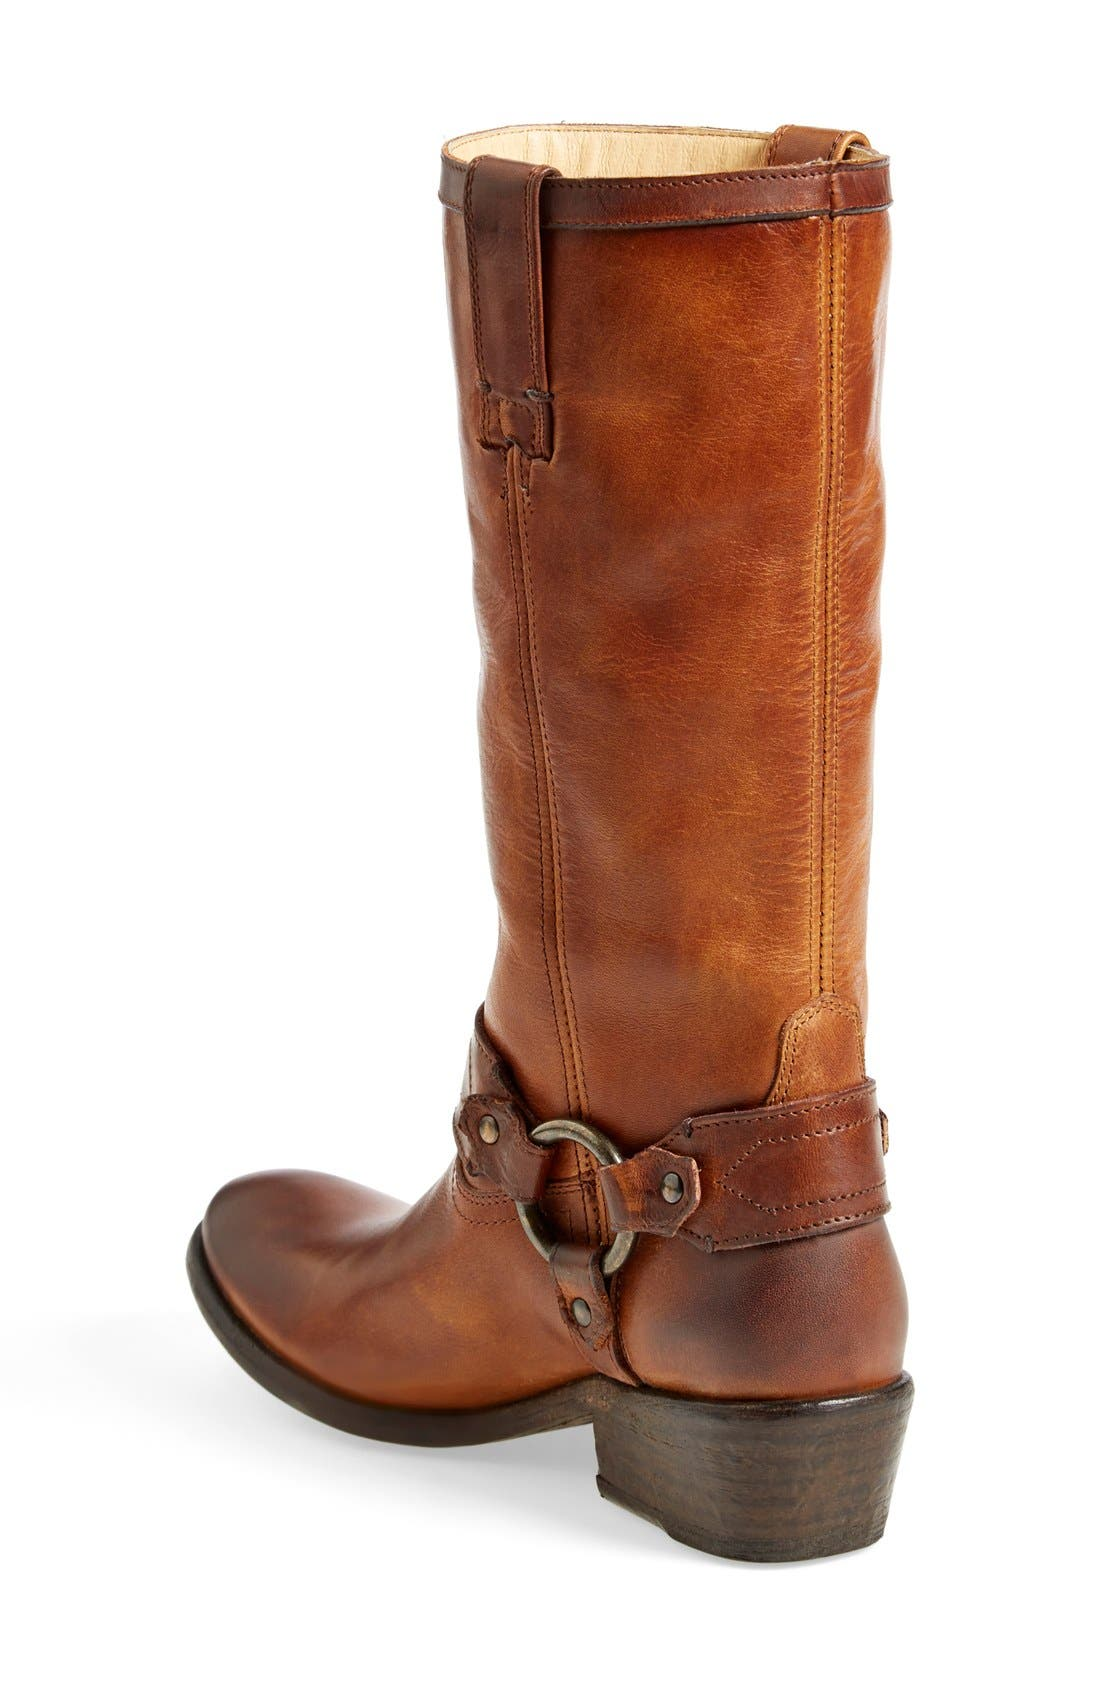 'Carson Harness' Western Mid Calf Riding Boot,                             Alternate thumbnail 2, color,                             200